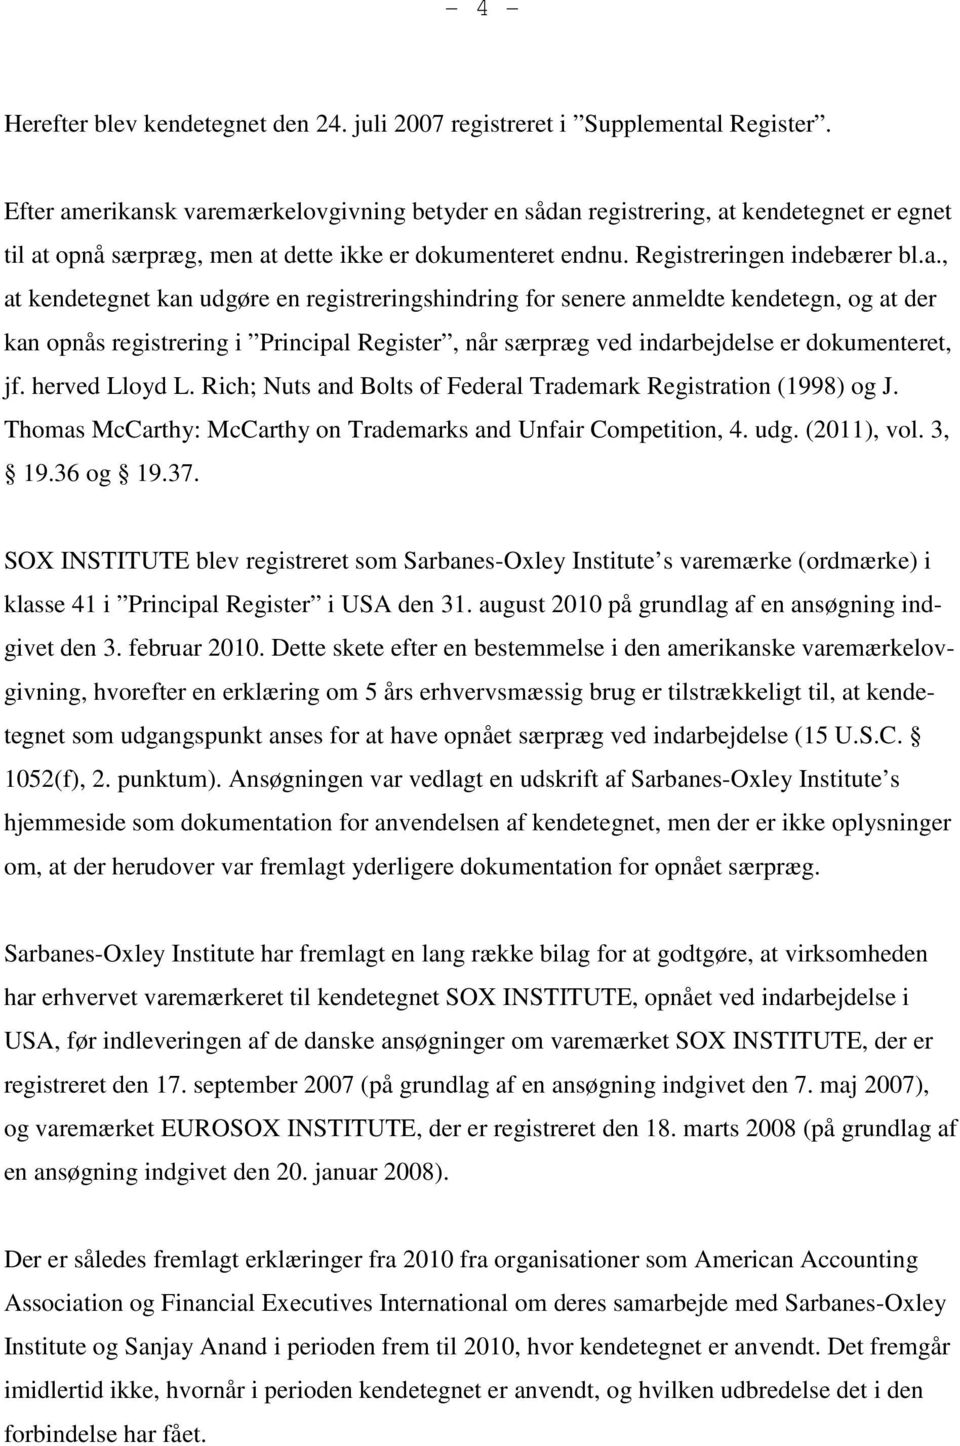 herved Lloyd L. Rich; Nuts and Bolts of Federal Trademark Registration (1998) og J. Thomas McCarthy: McCarthy on Trademarks and Unfair Competition, 4. udg. (2011), vol. 3, 19.36 og 19.37.